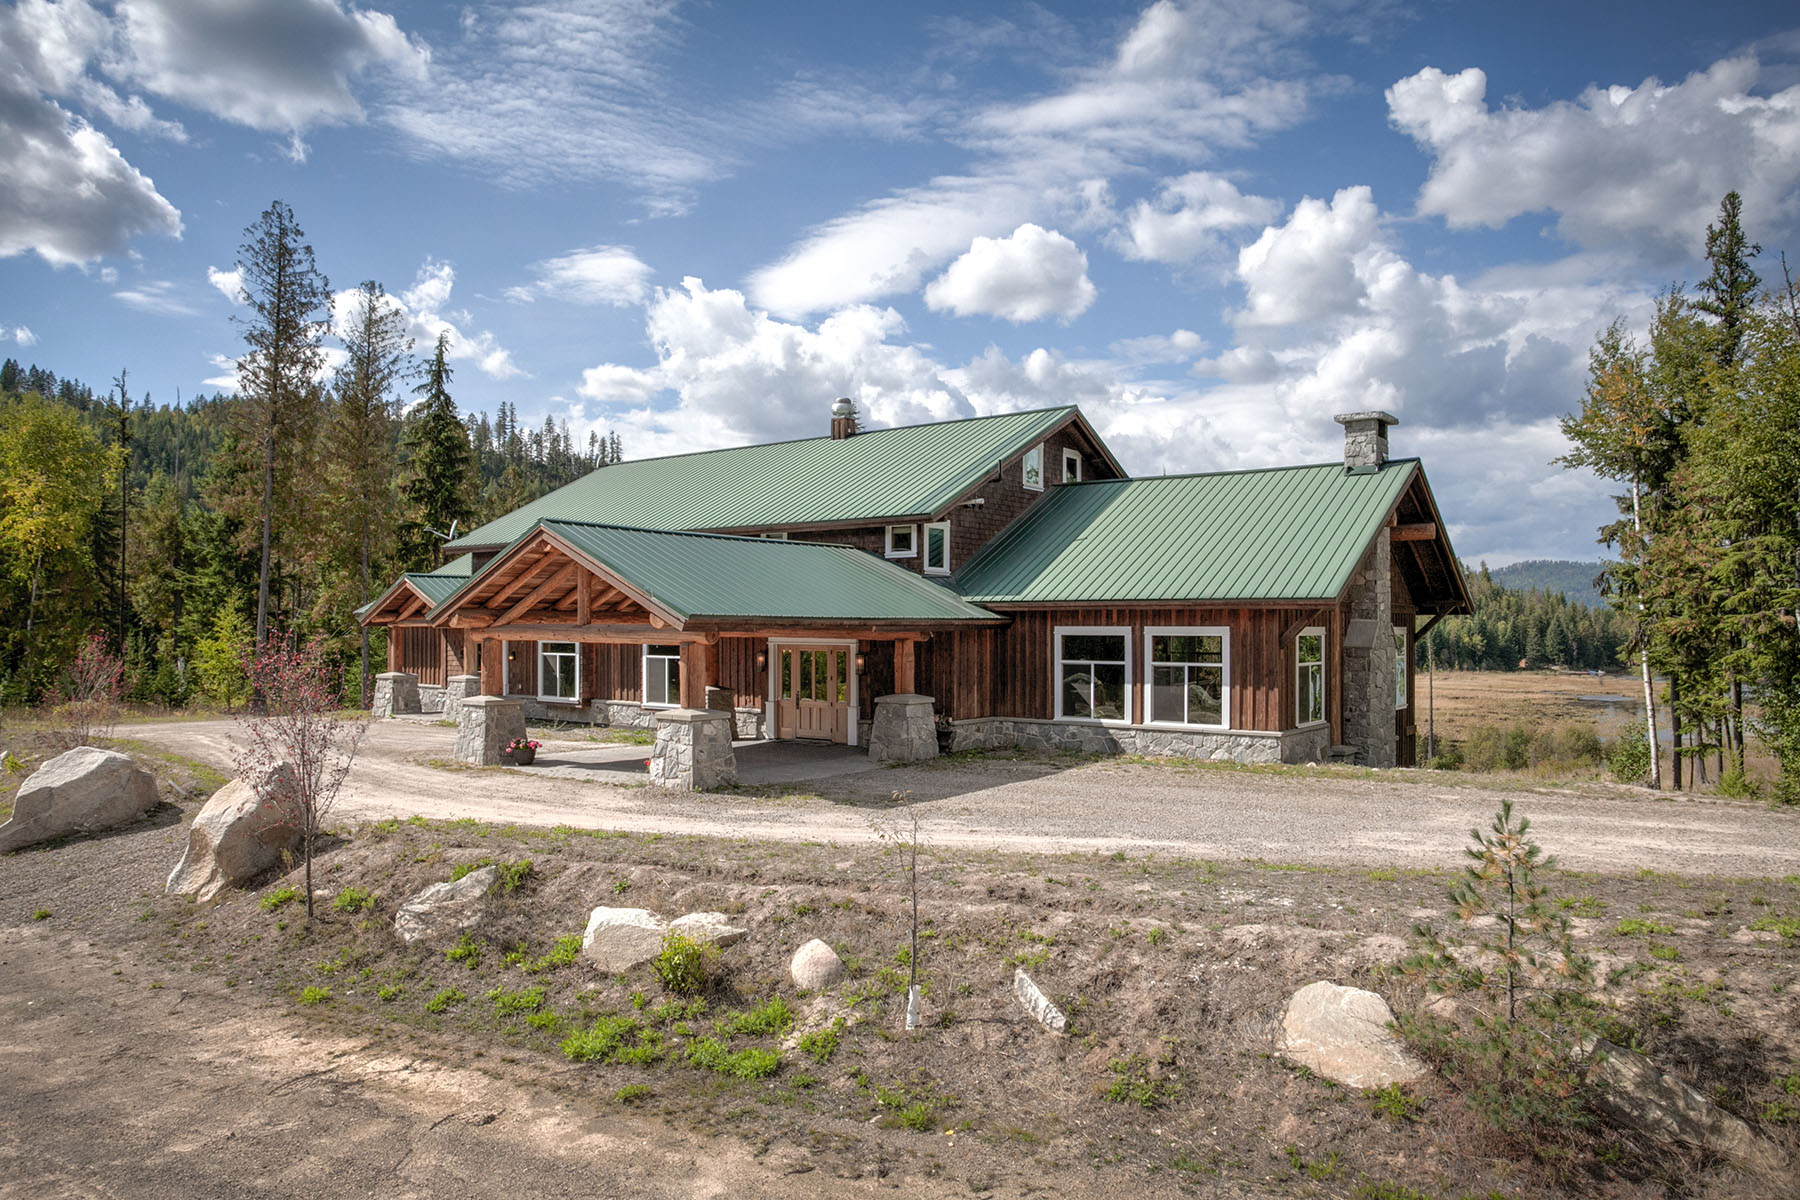 Maison unifamiliale pour l Vente à Magnificent Lodge Home Estate Coolin, Idaho, 83821 États-Unis